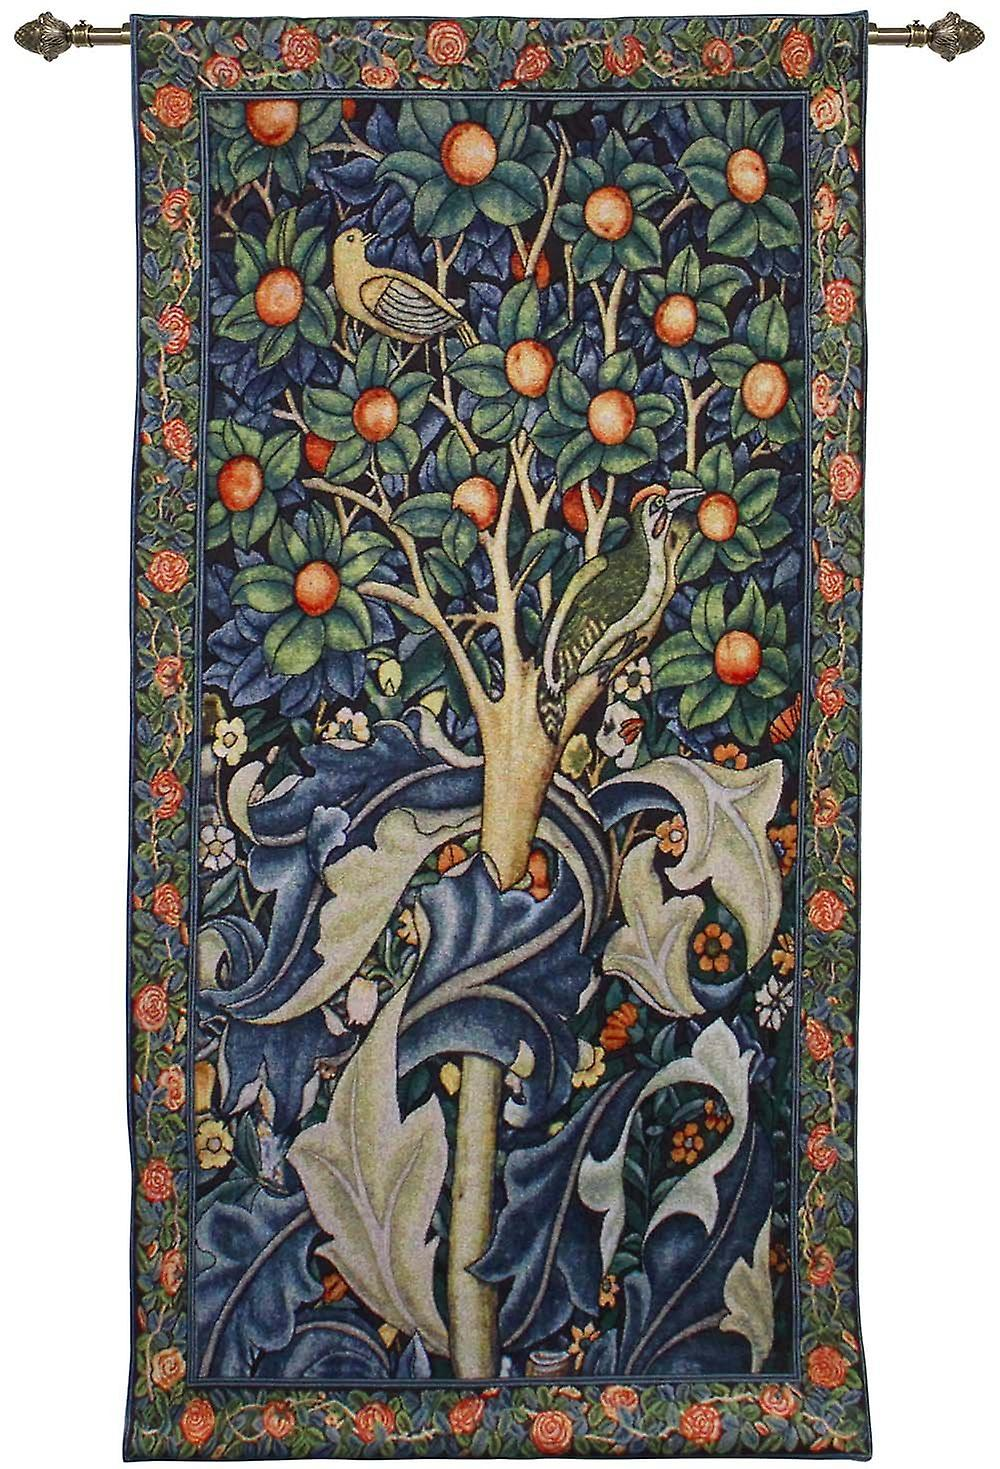 William morris - woodpecker in fruit tree wall hanging by signare tapestry / 69cm x 139cm / wh-wm-wp